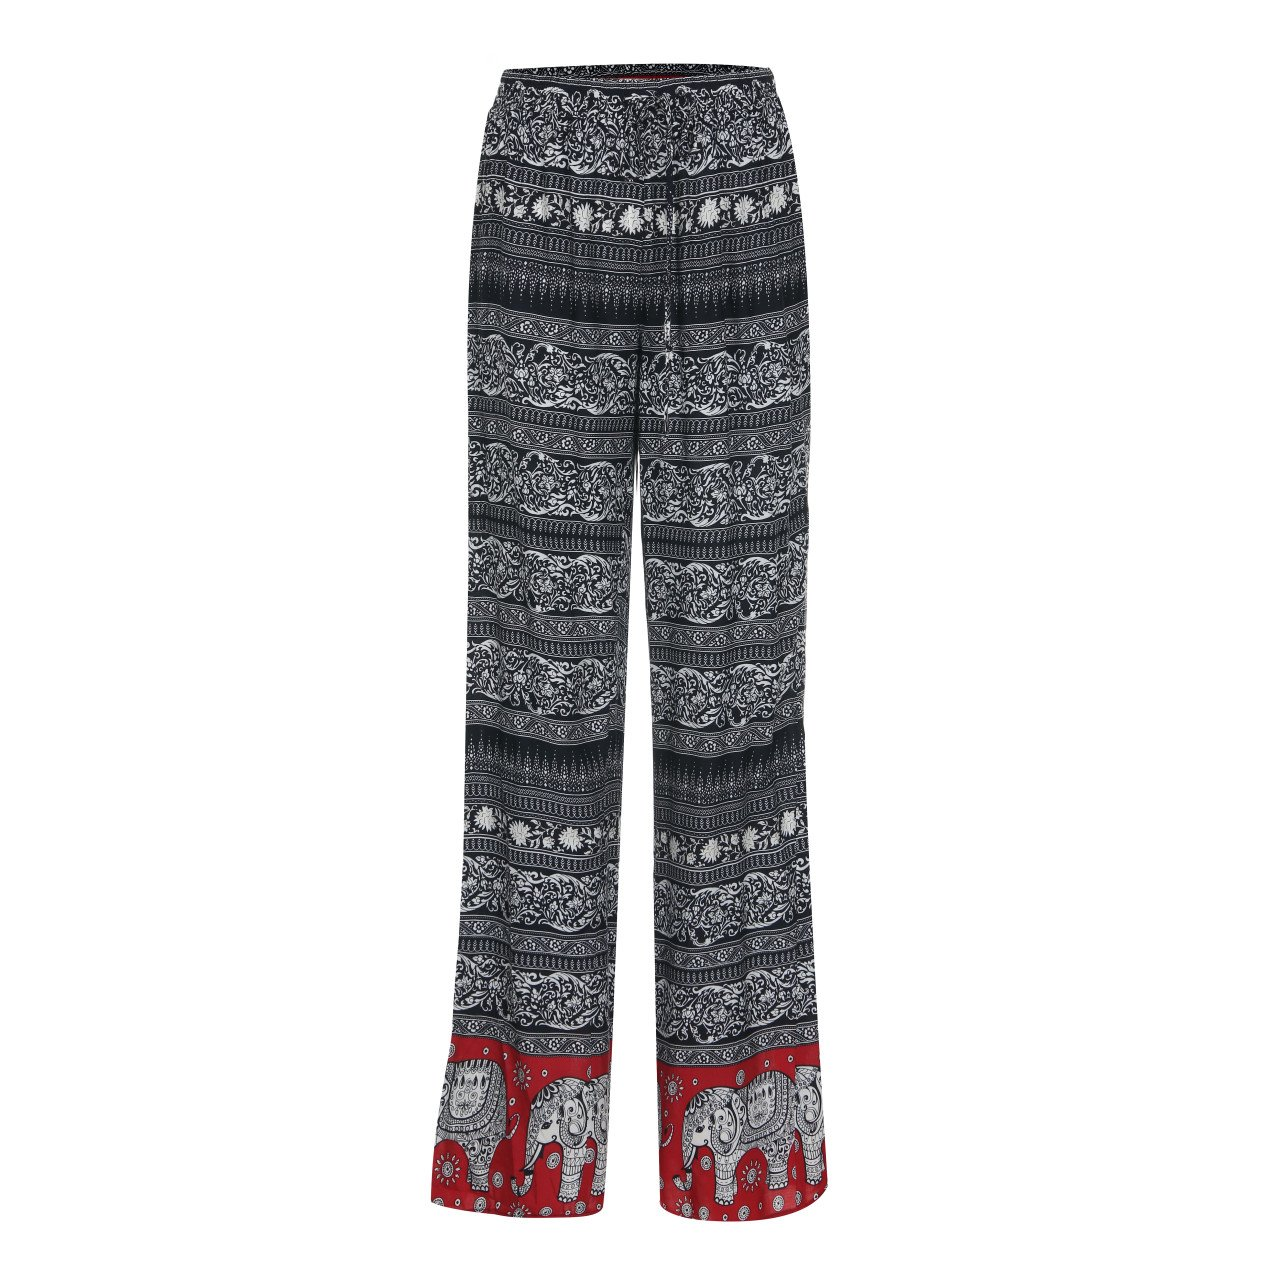 T.B.T. Women's Casual Printed Palazzo Pants Elastic Waist Band (A72P01-04RED-M)